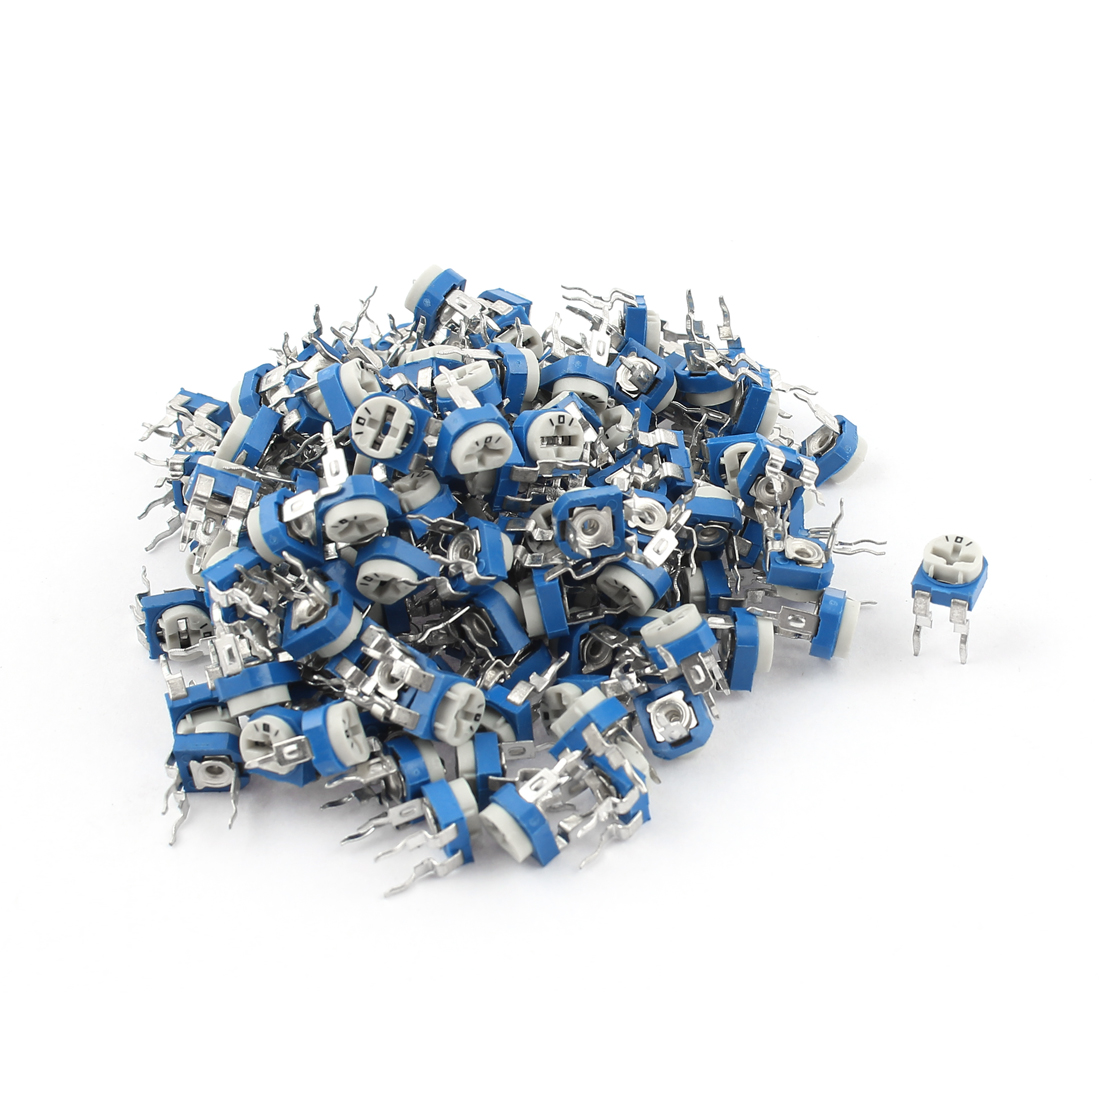 150Pcs 100 ohm Vertical PCB Preset Variable Resistor Trimmer Potentiometer Blue